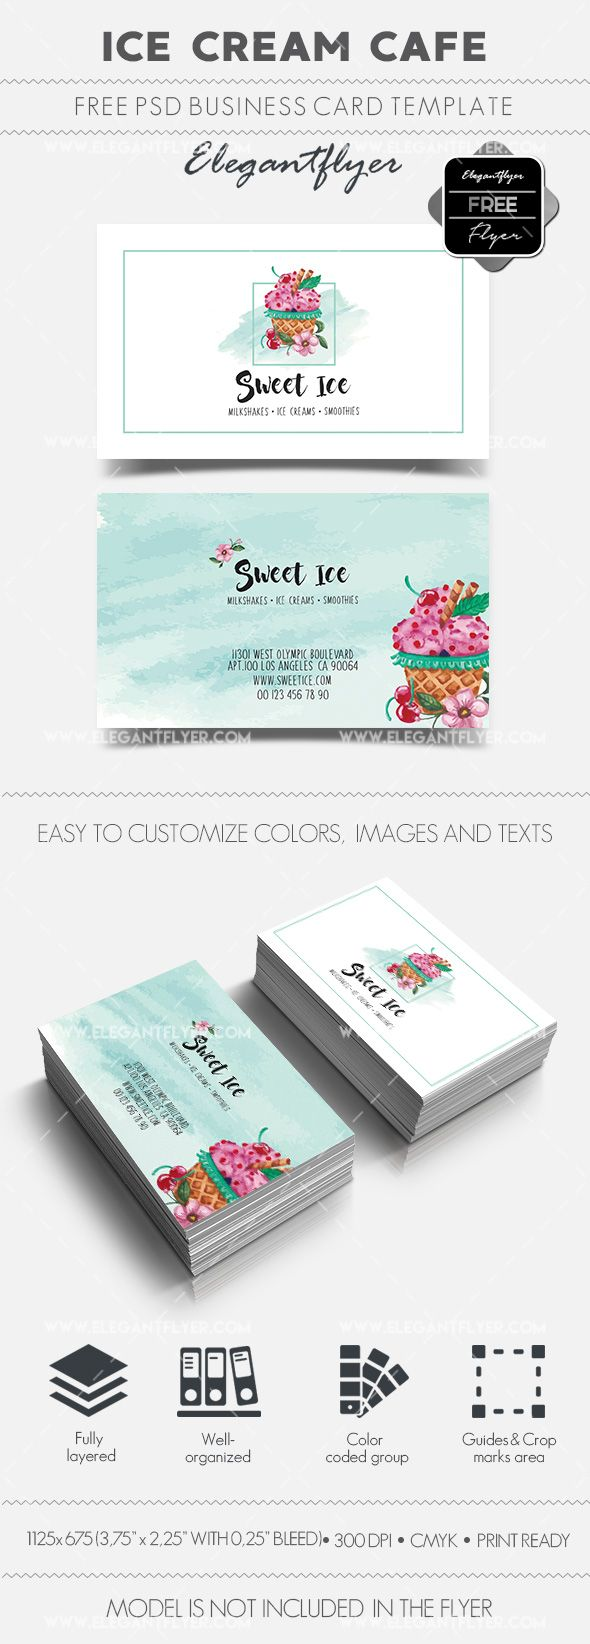 Ice Cream Cafe Free Business Card Templates Psd Free Business Card Templates Free Business Cards Business Card Template Psd